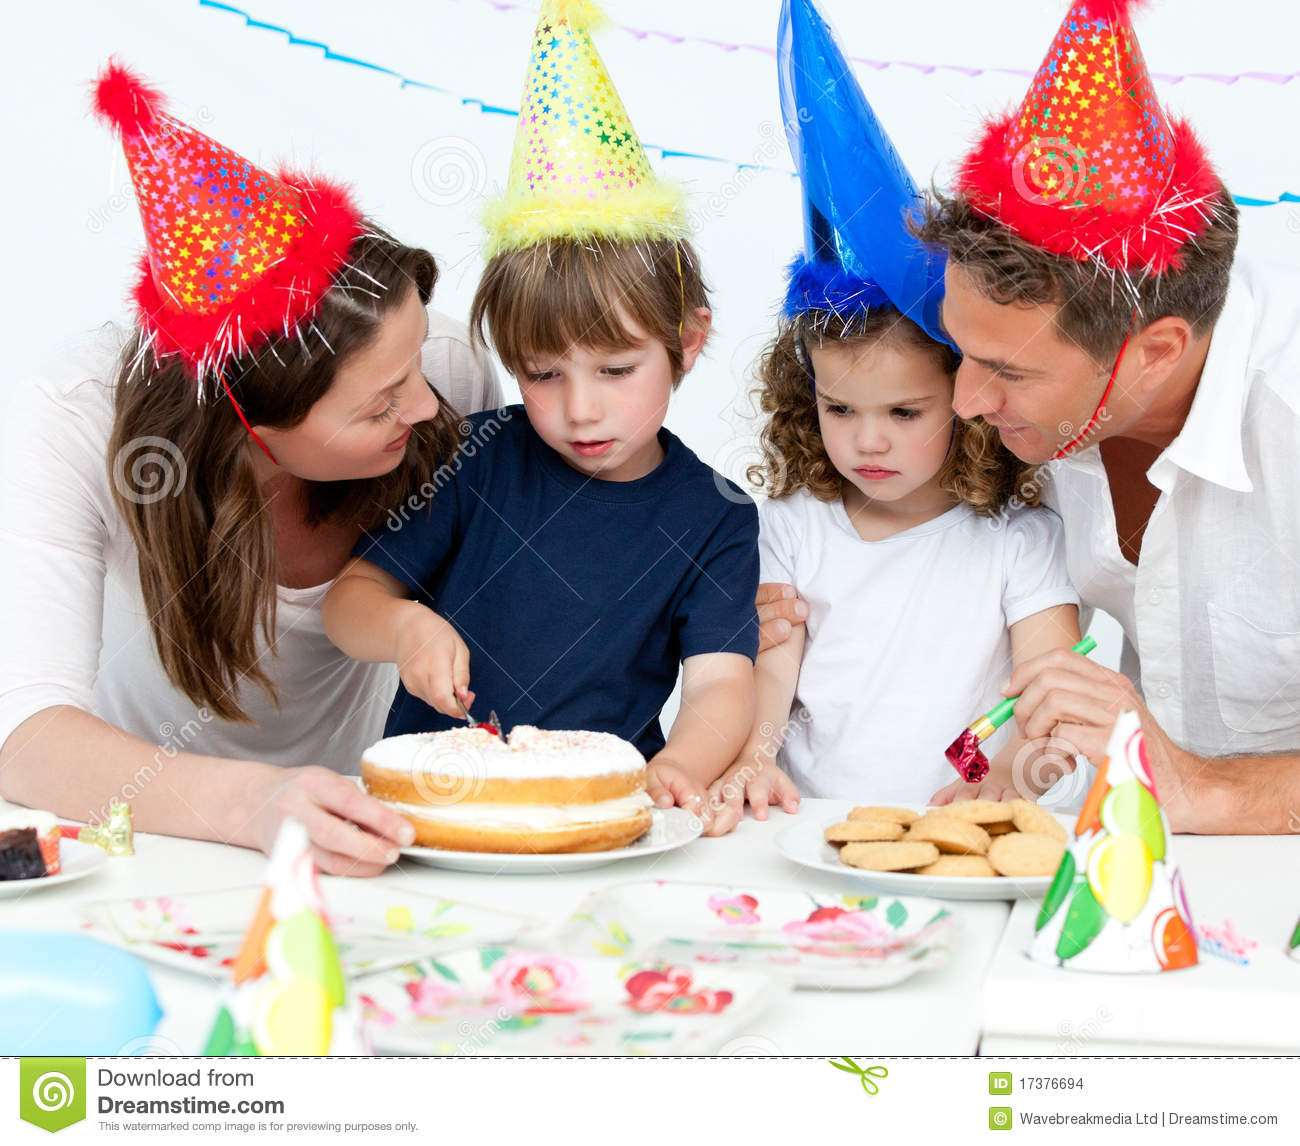 Cute Little Boy Cutting A Birthday Cake For His Family In The Kitchen